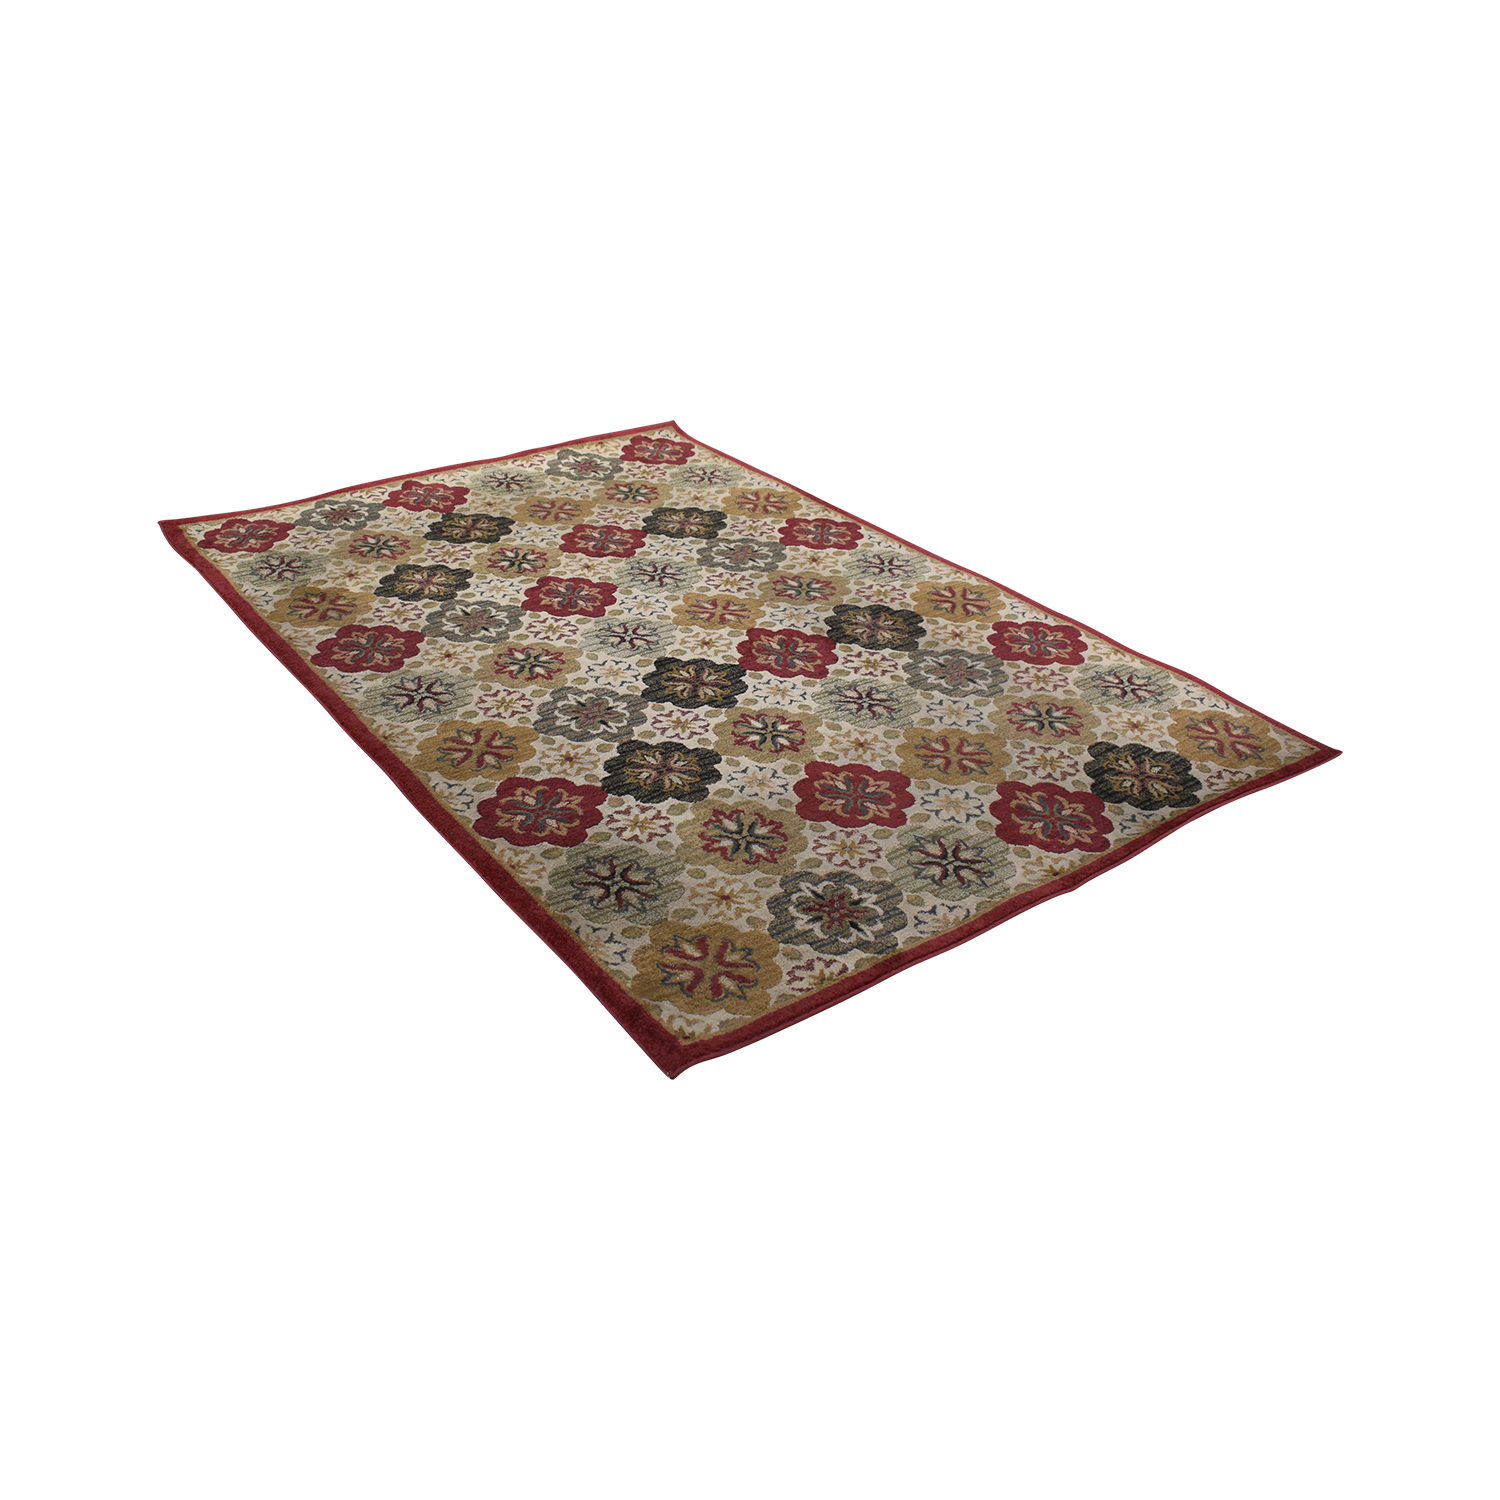 Fiezy Rugs Fiezy Rugs Keystone Rug for sale